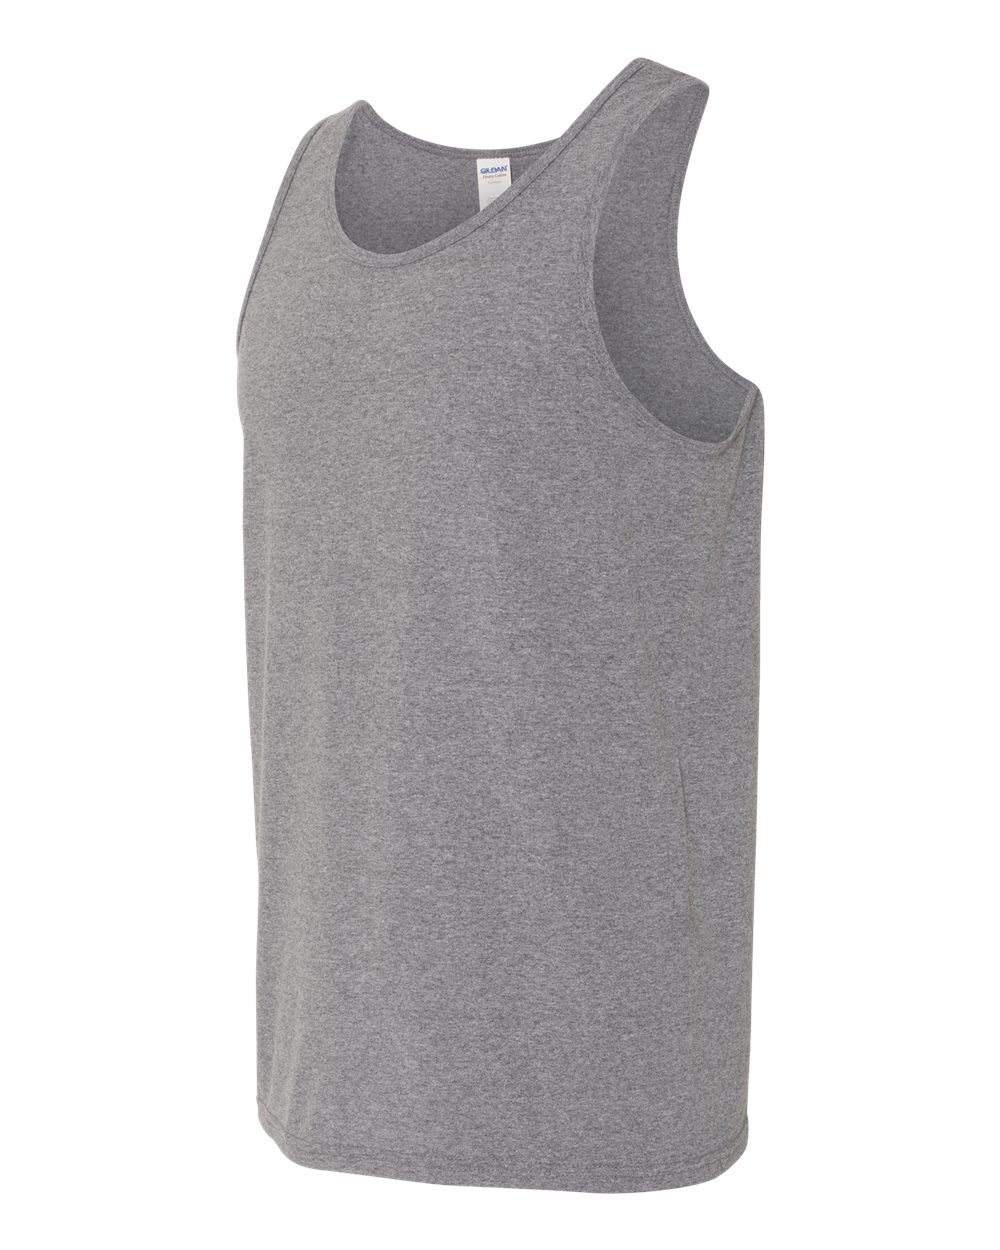 9509b84a51 Gildan 5200 - Heavy Cotton Tank Top $3.54 - Men's Pants